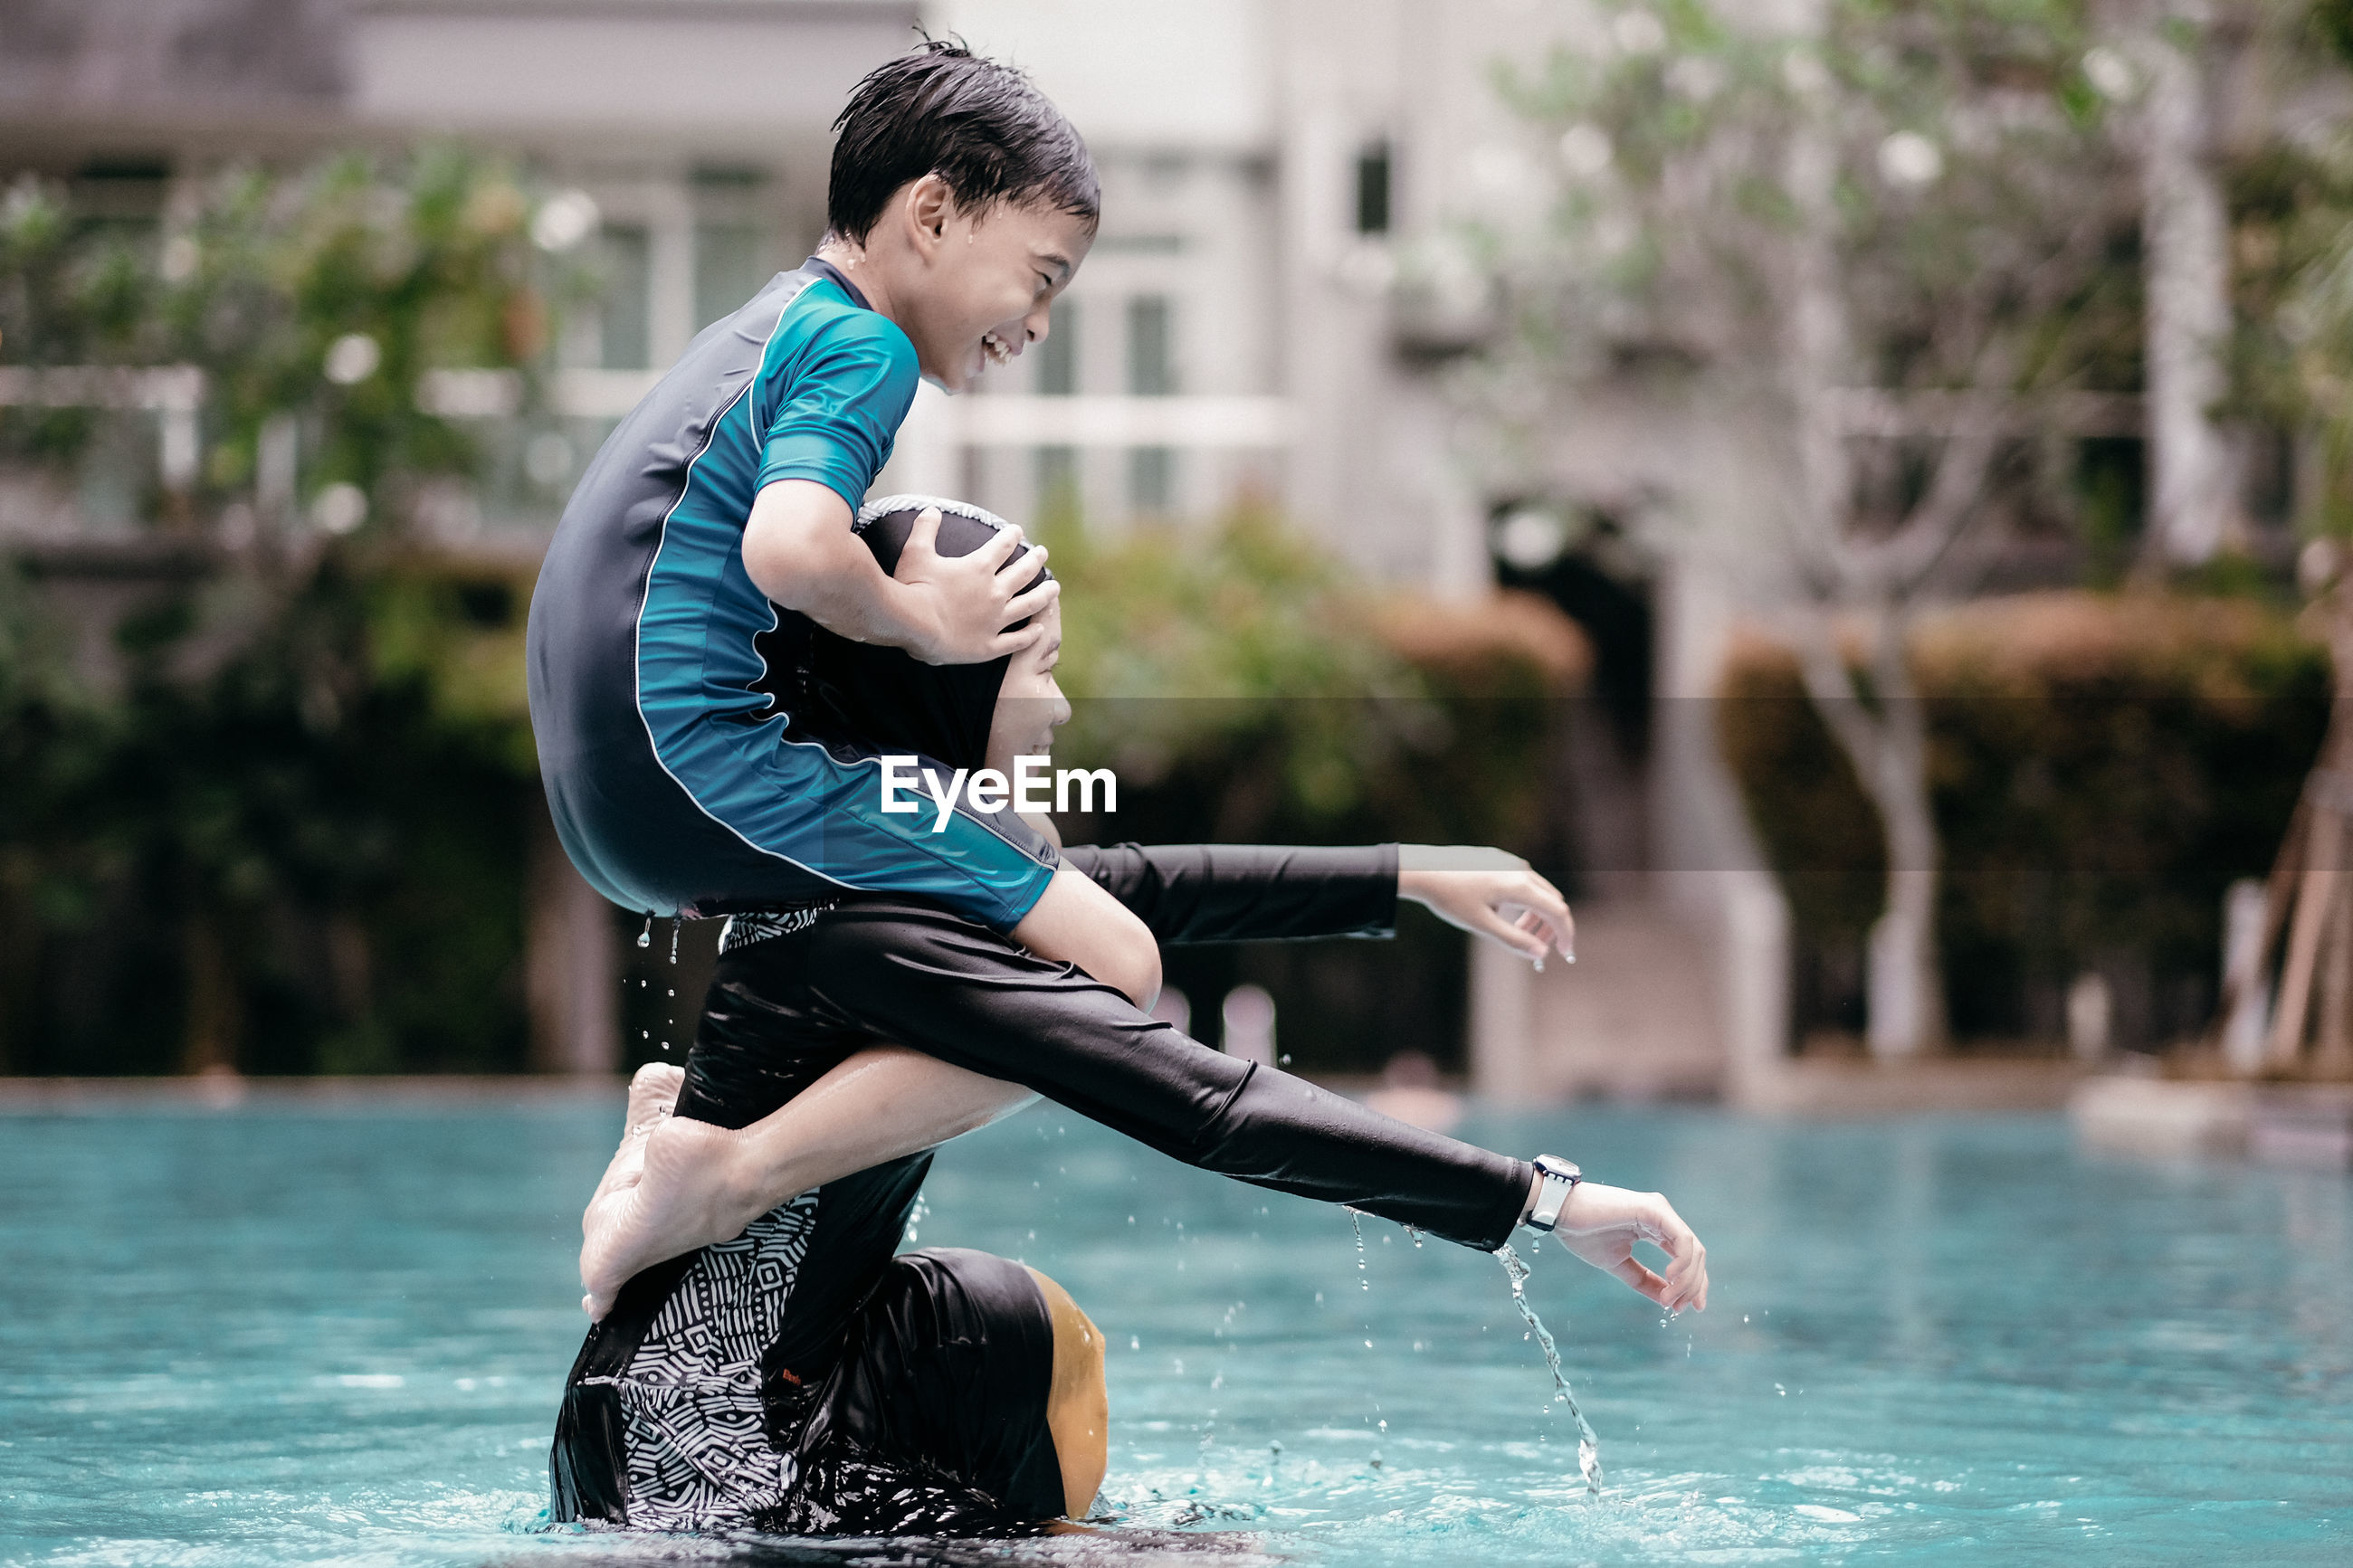 FULL LENGTH OF BOY WITH WATER